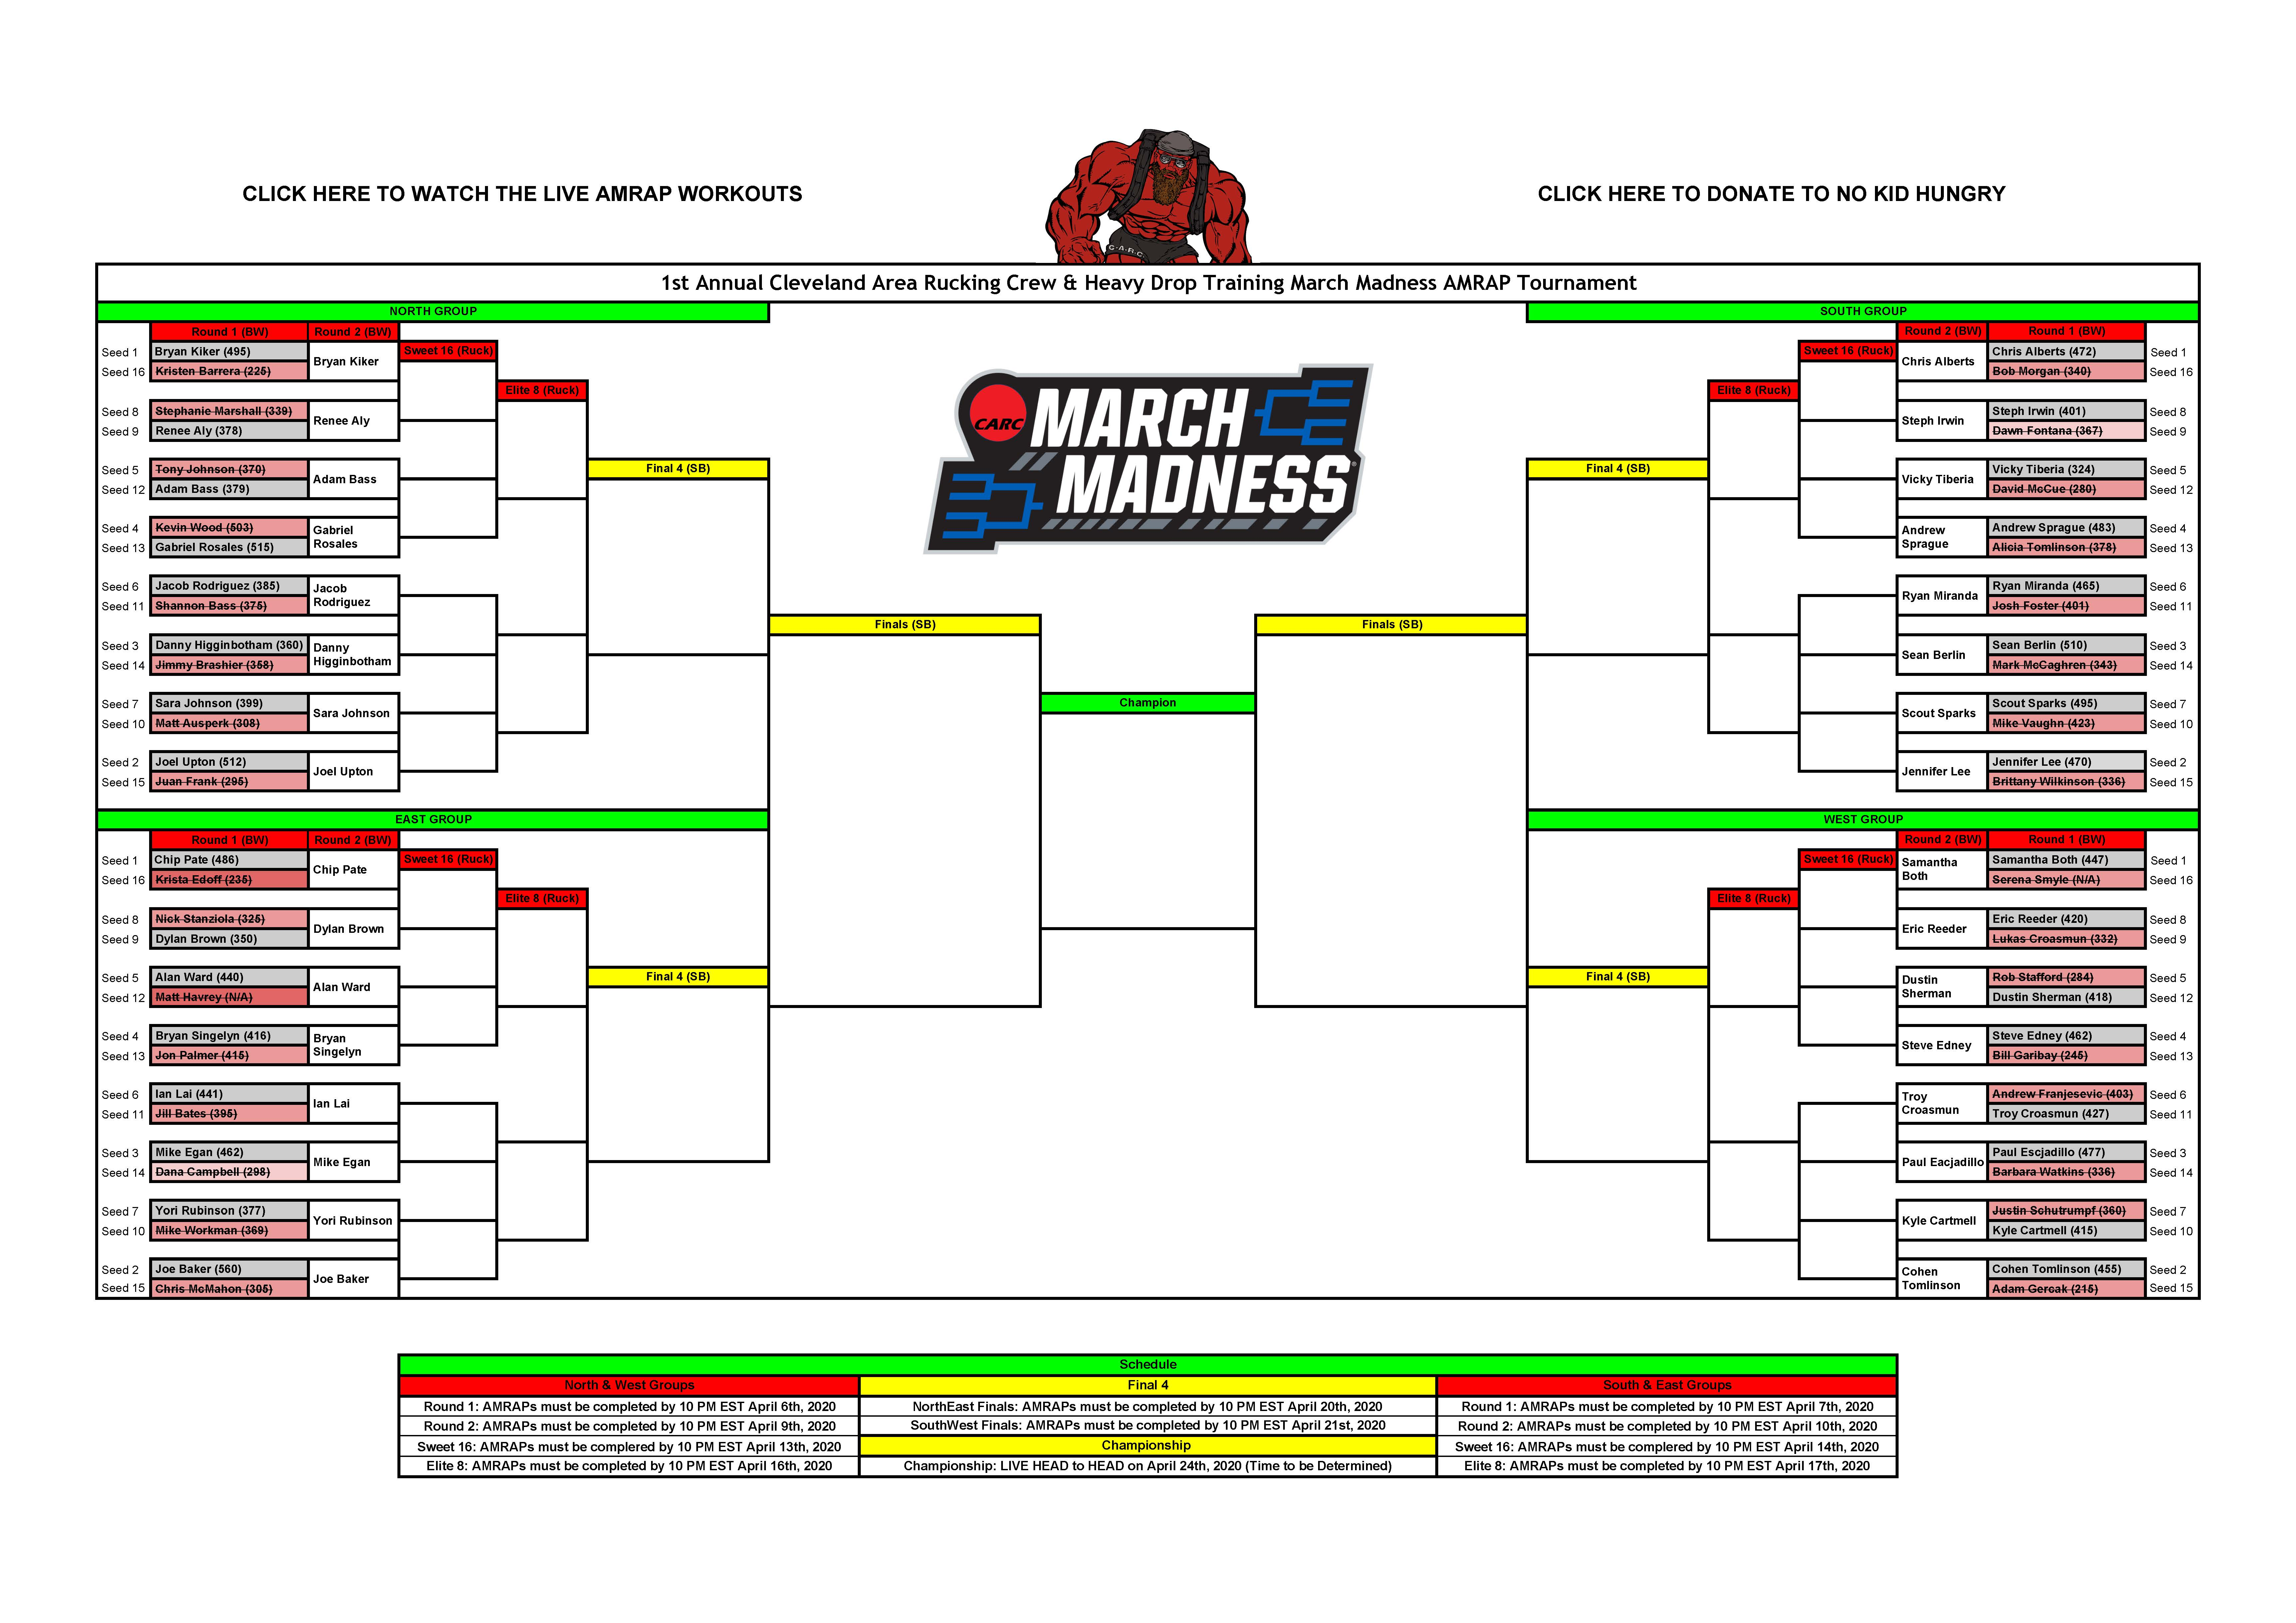 MARCH MADNESS 2021!